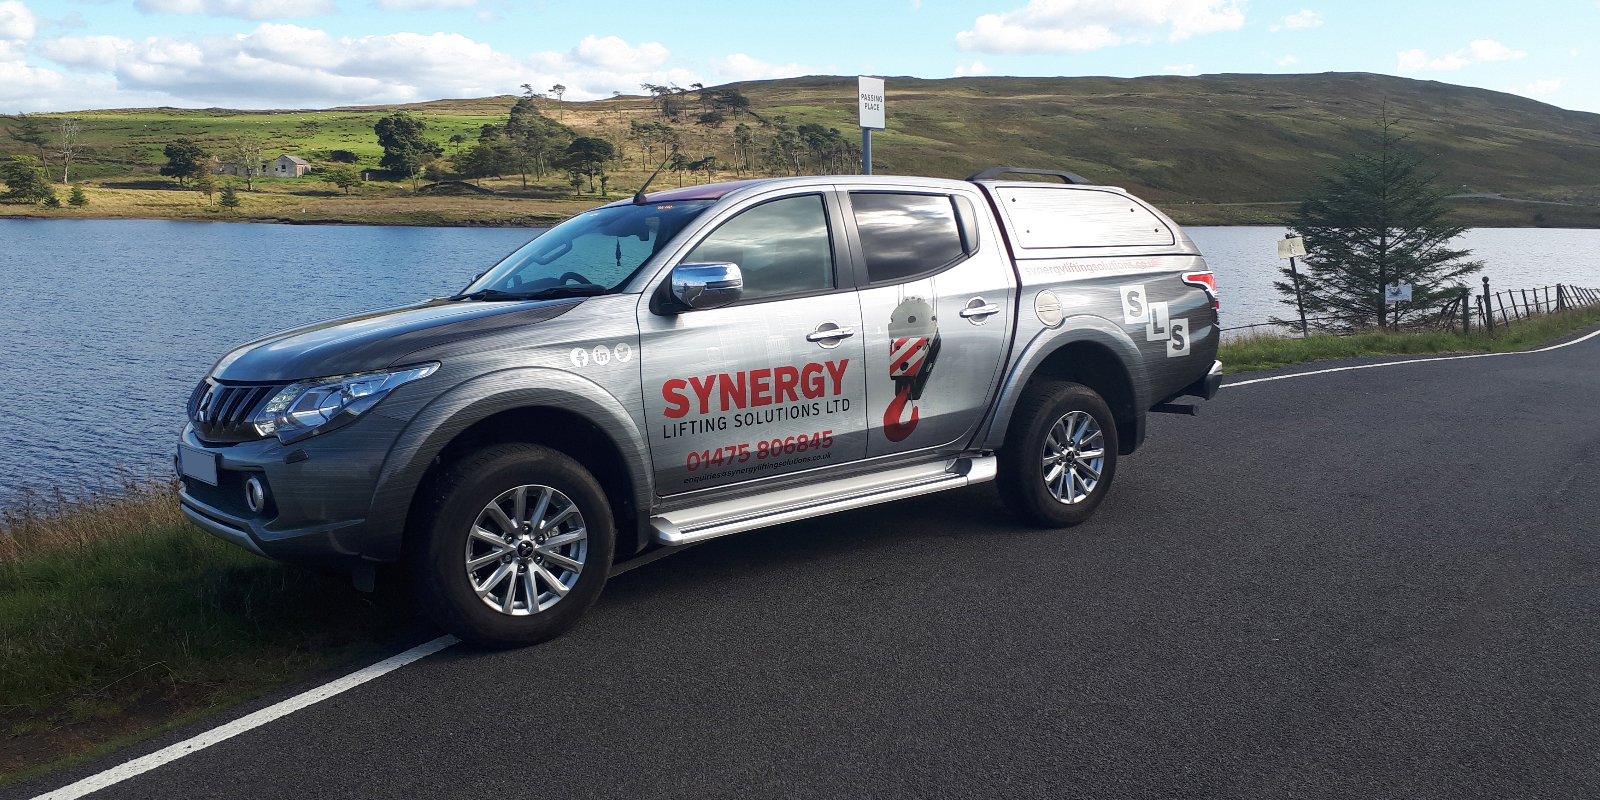 Synergy Lifting Solutions